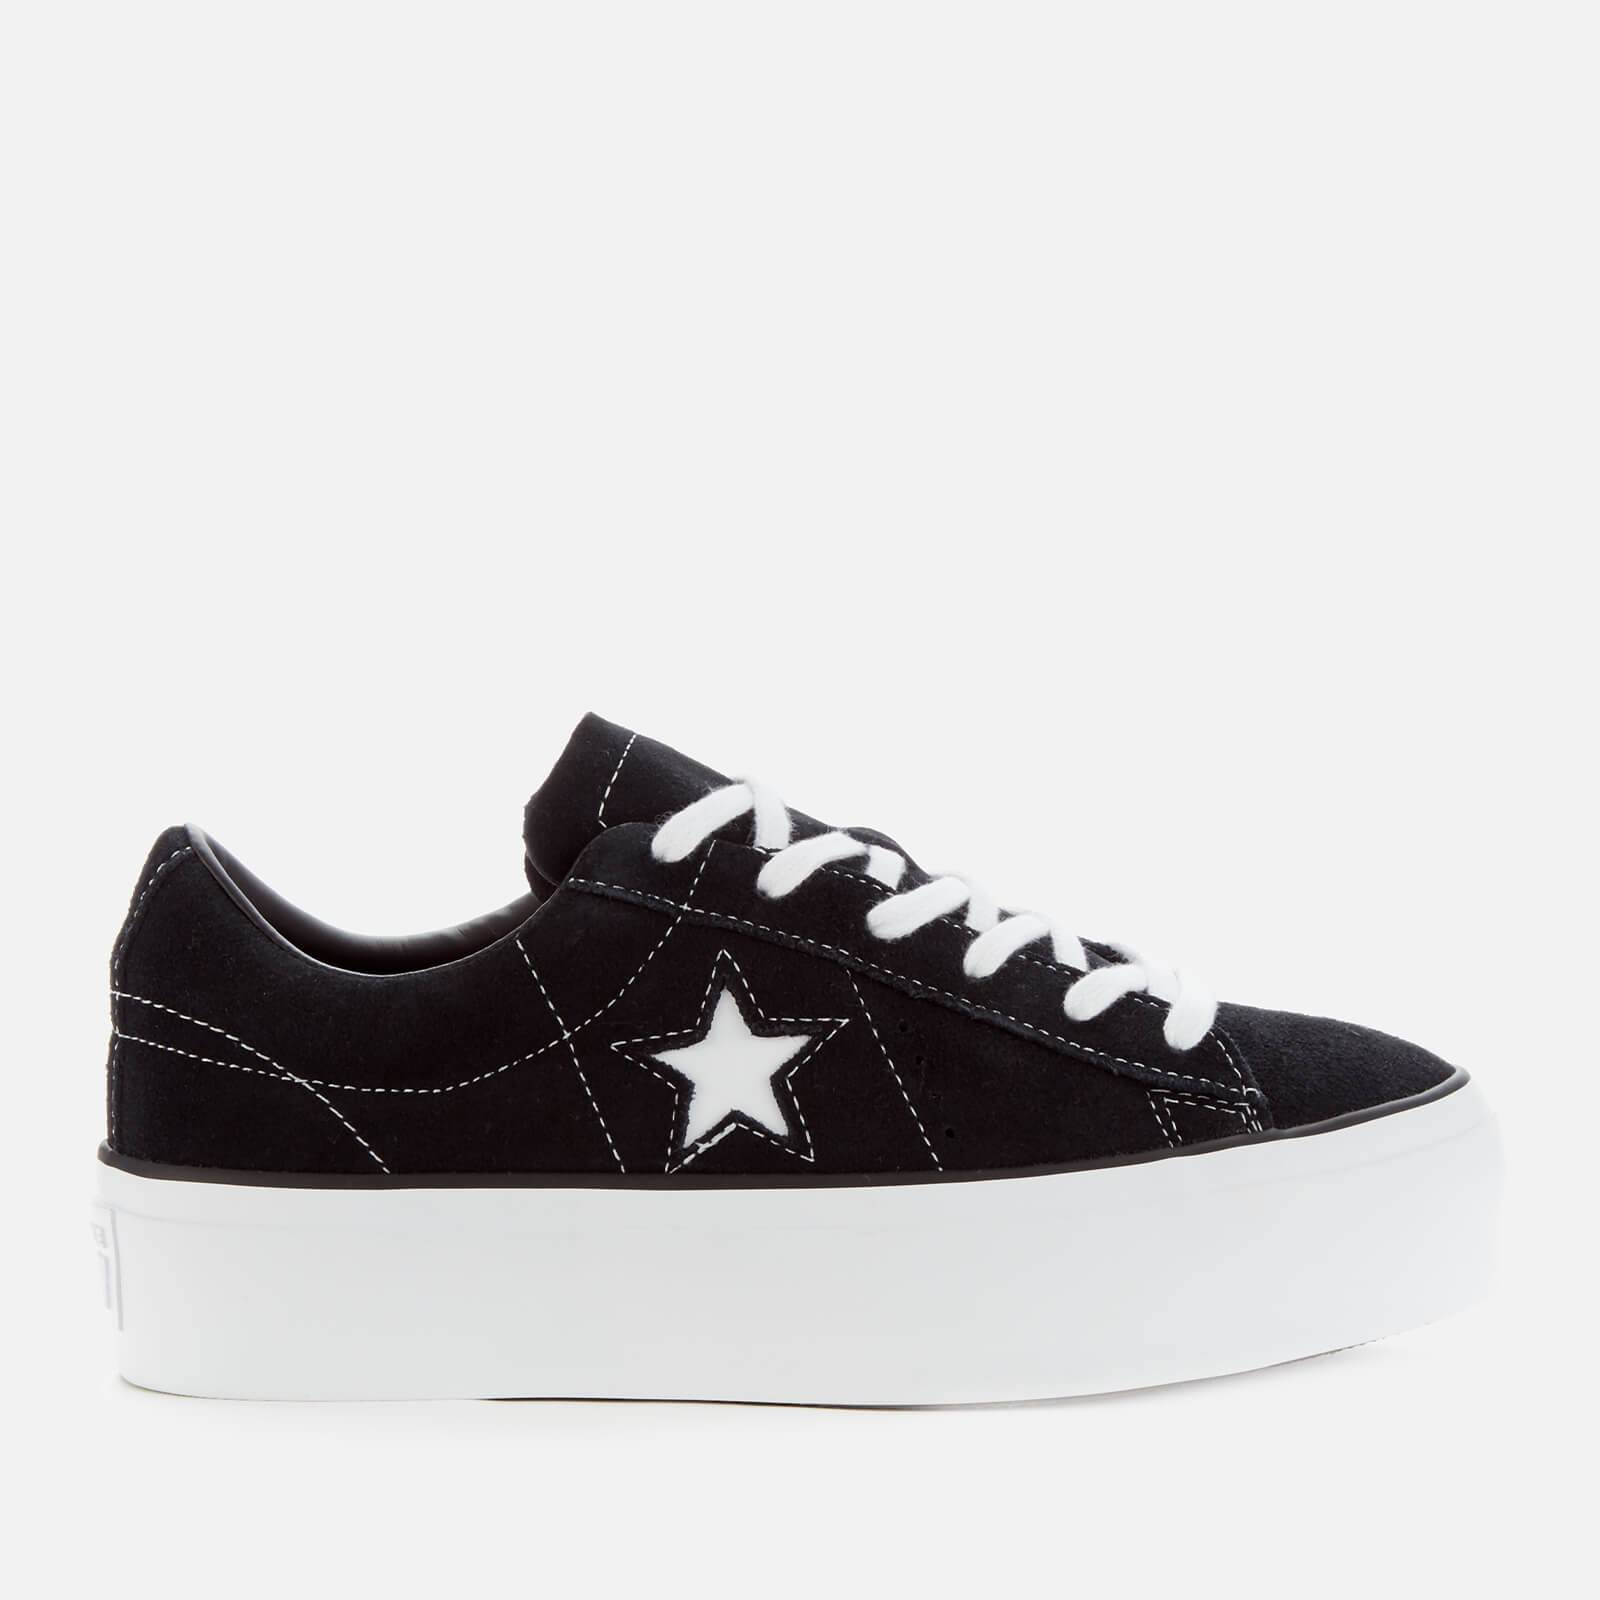 Converse Women's One Star Platform Ox Trainers - Black/Black/White - UK 4 - Black